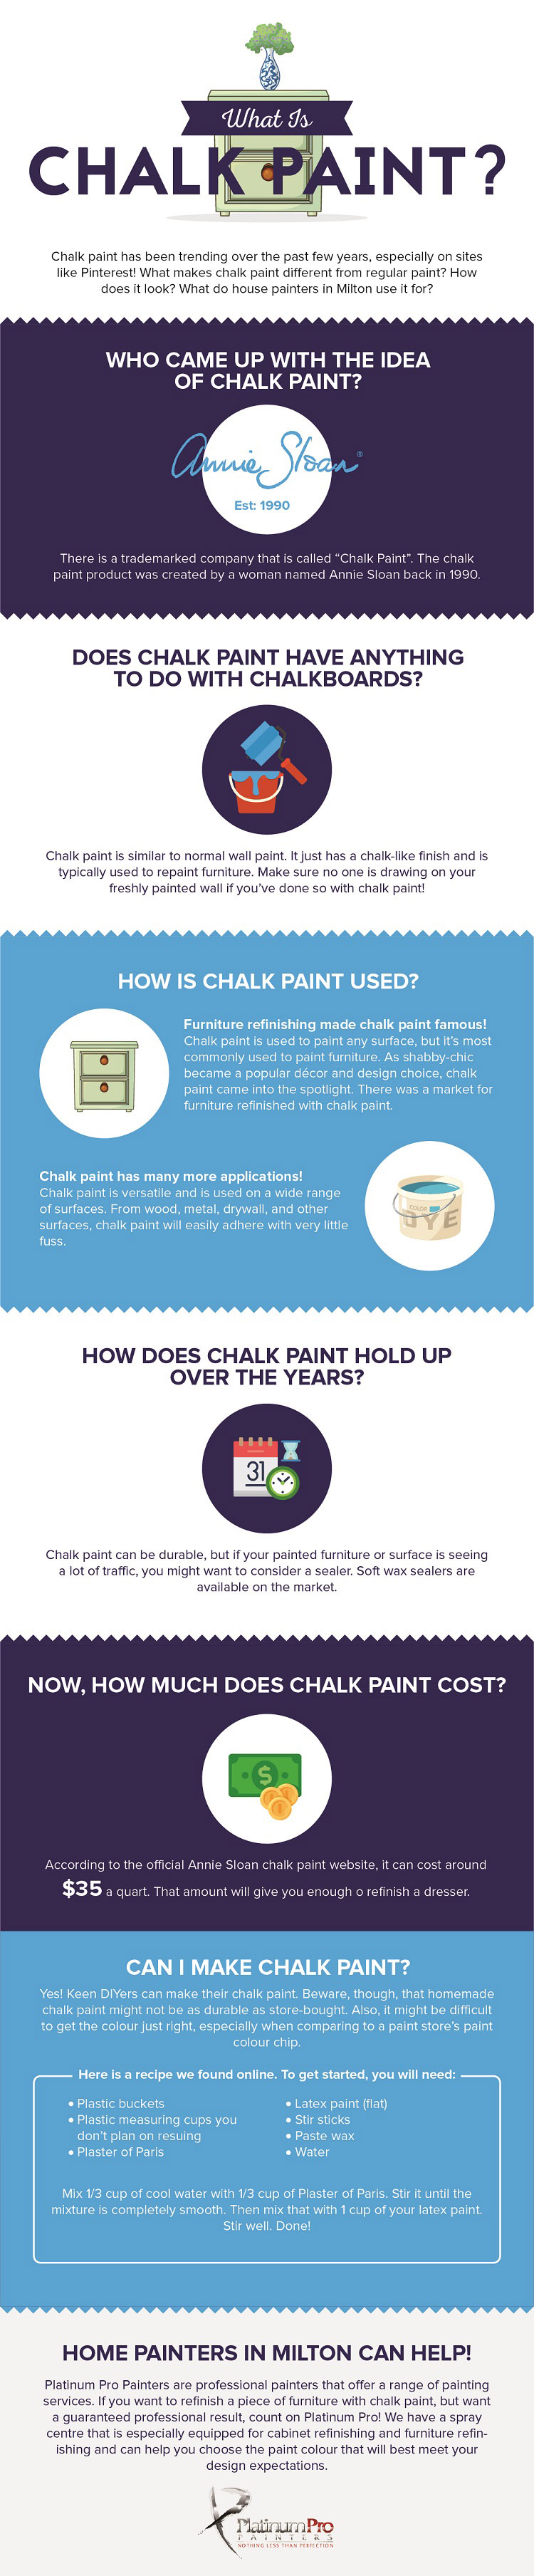 What is Chalk Paint?